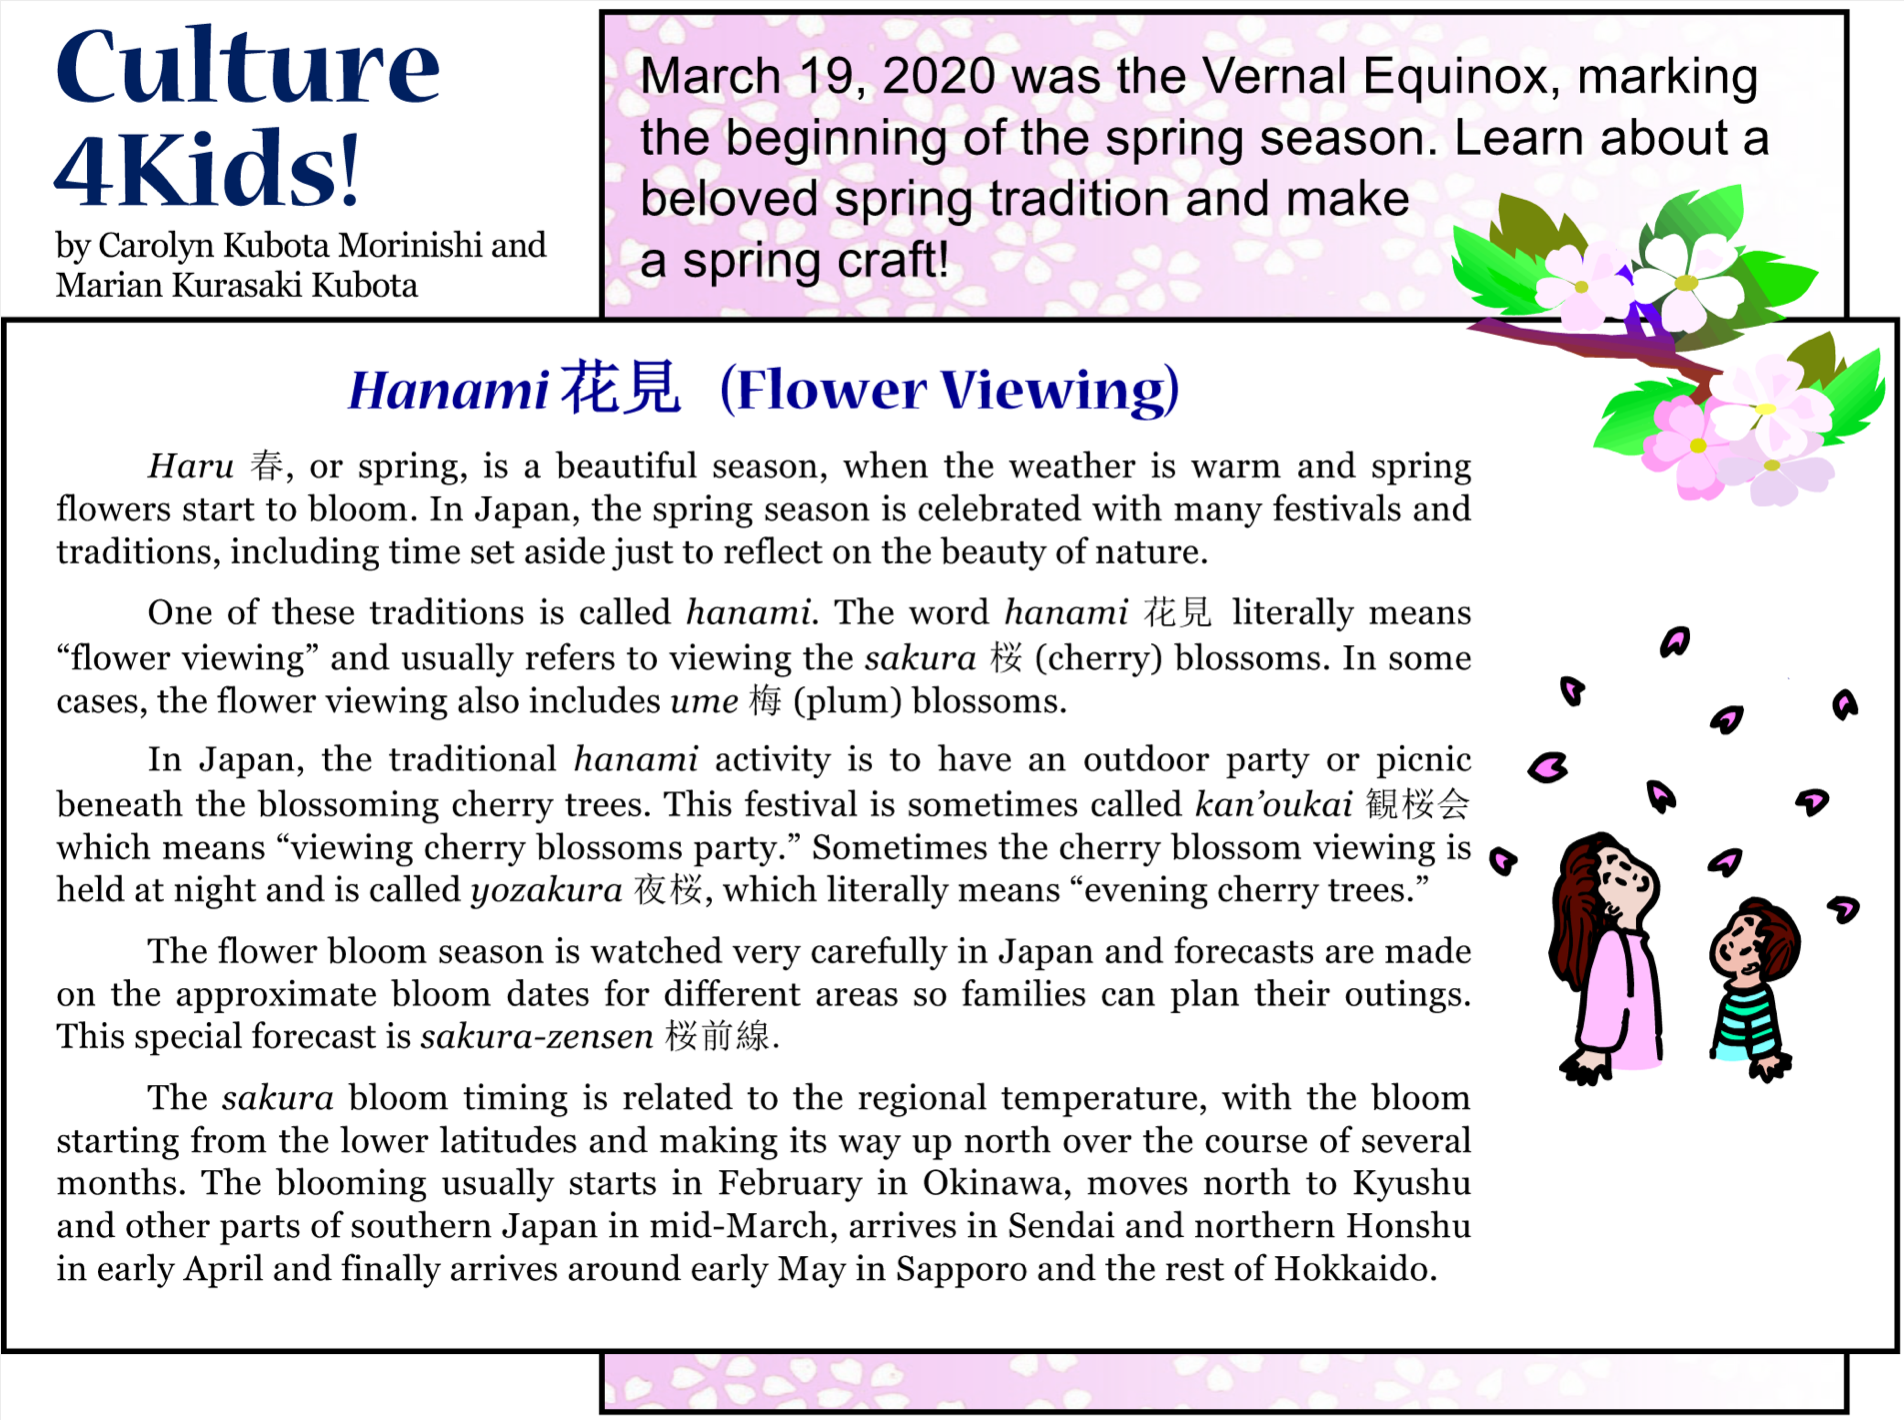 Culture 4Kids 'Hanami' Flower Viewing, March 20, 2020 Issue